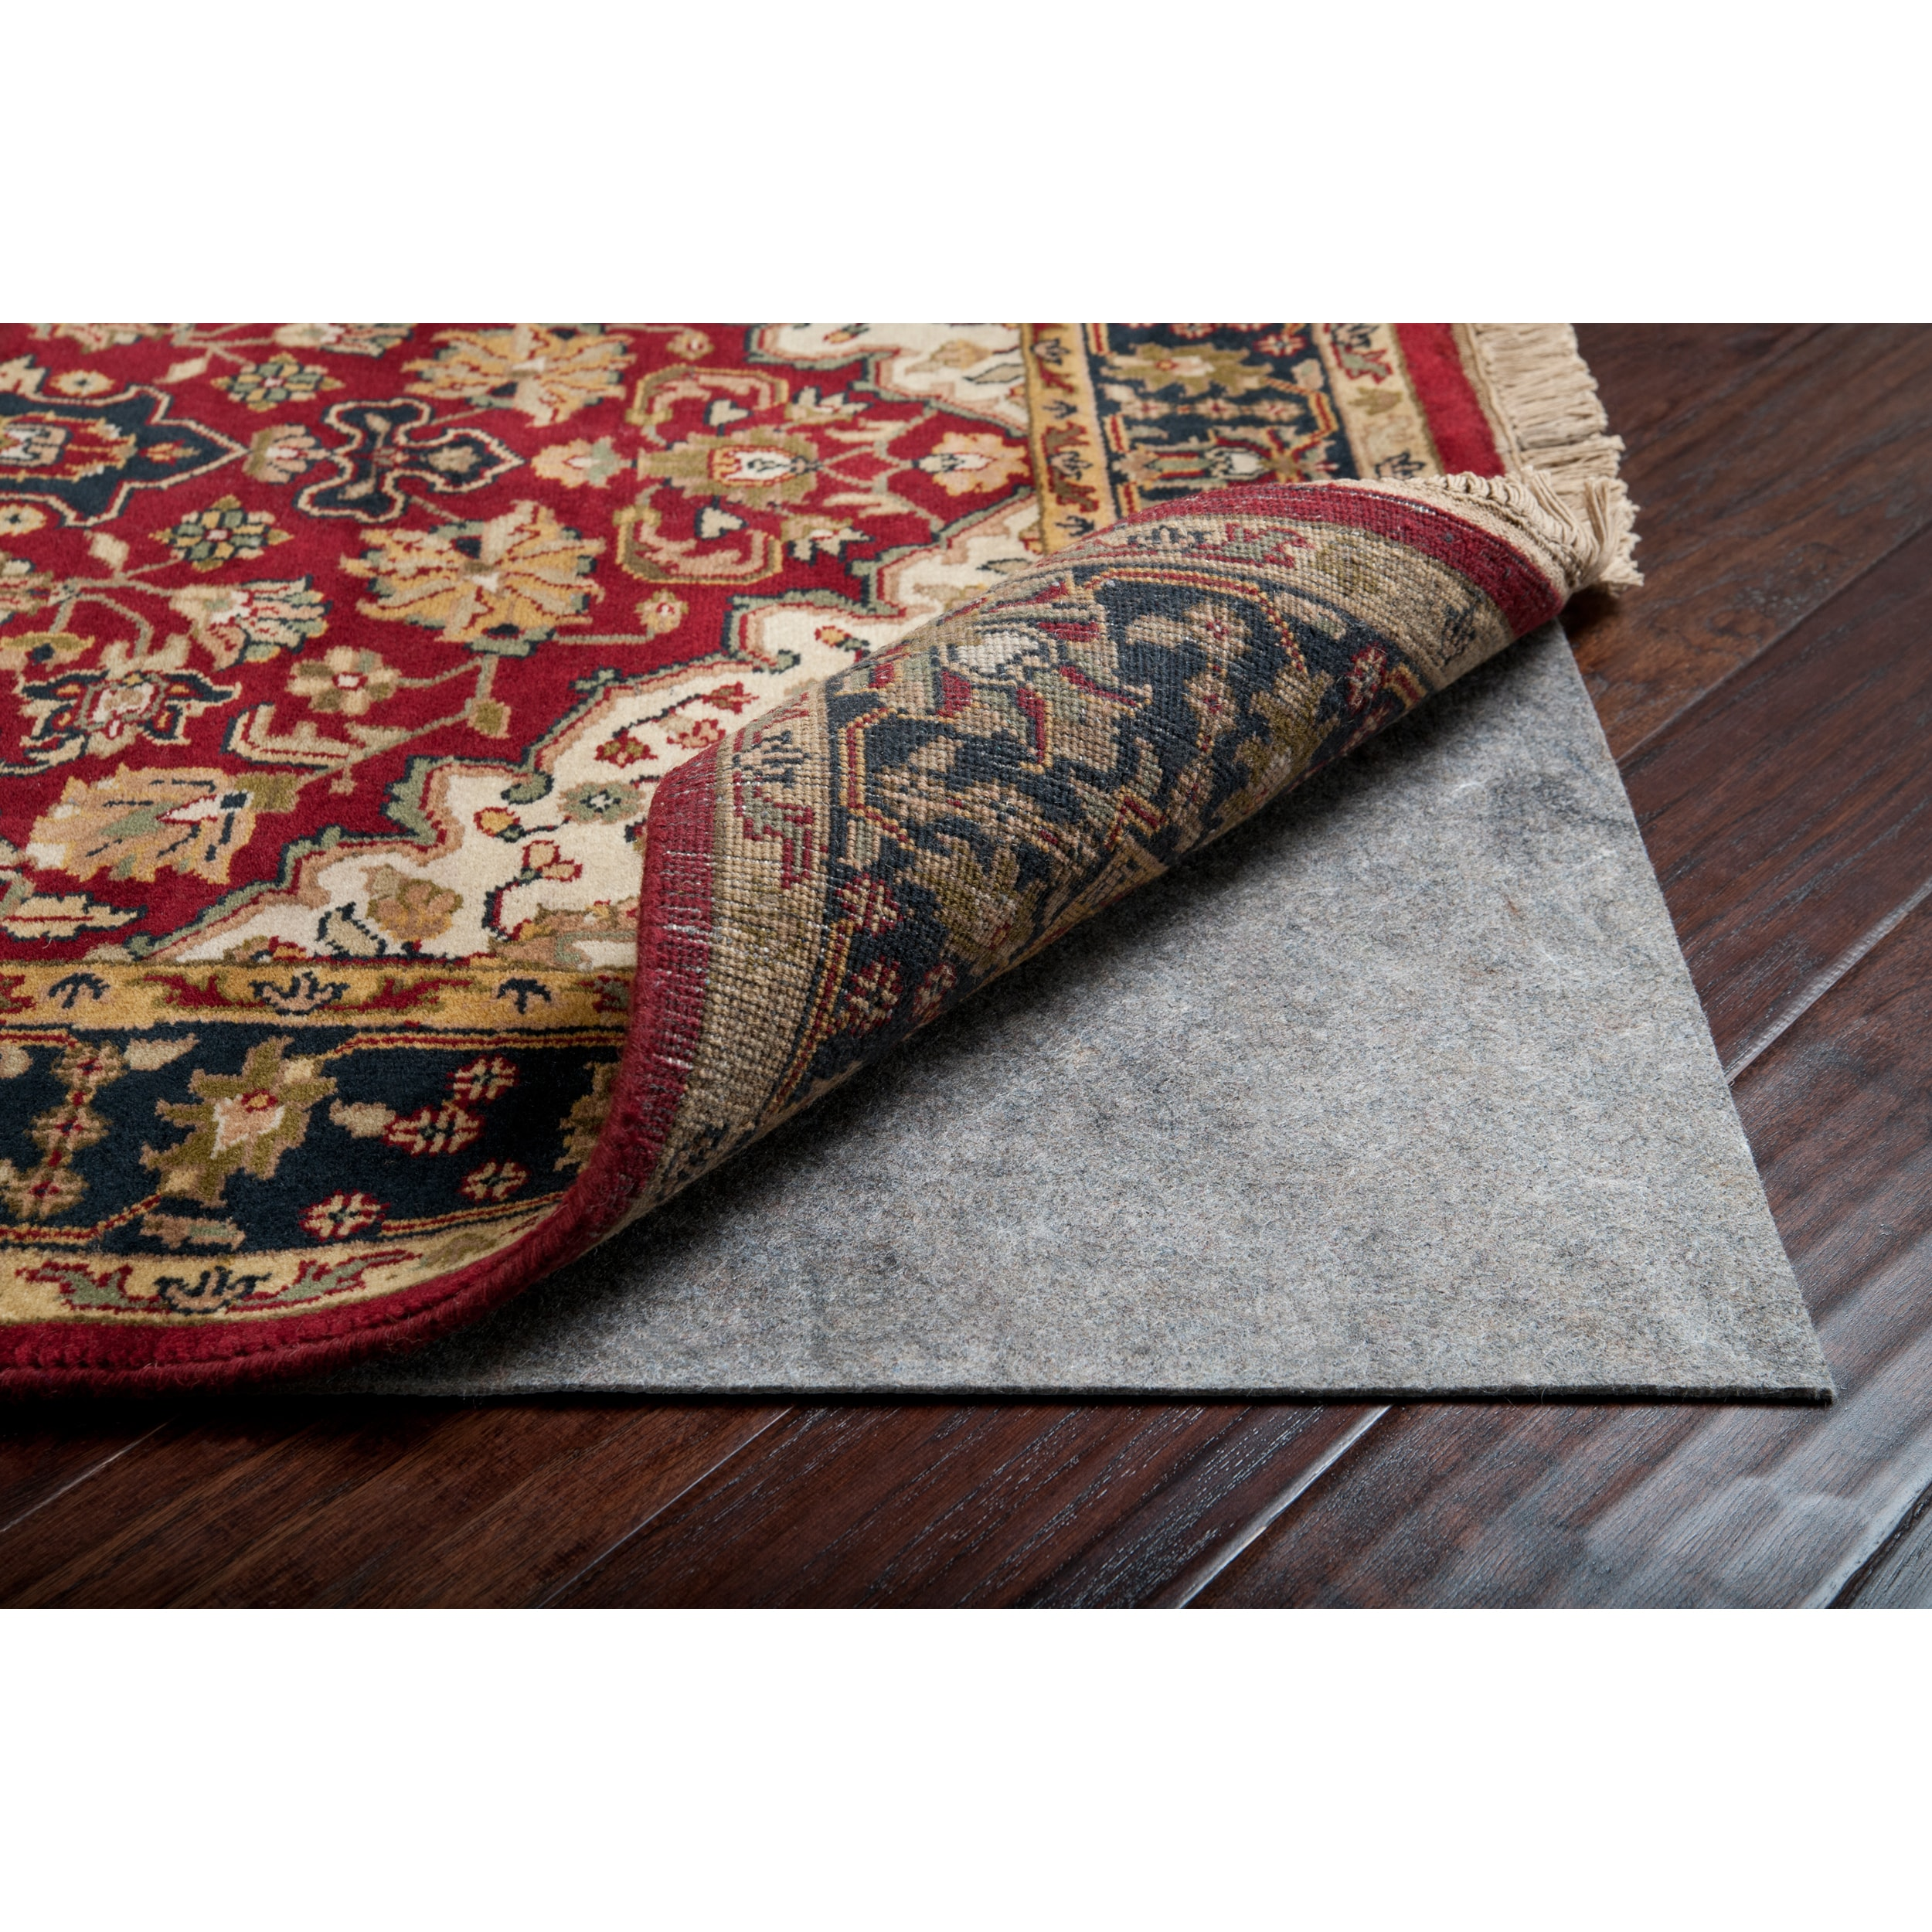 Rotell Rug Pad (4' Square)